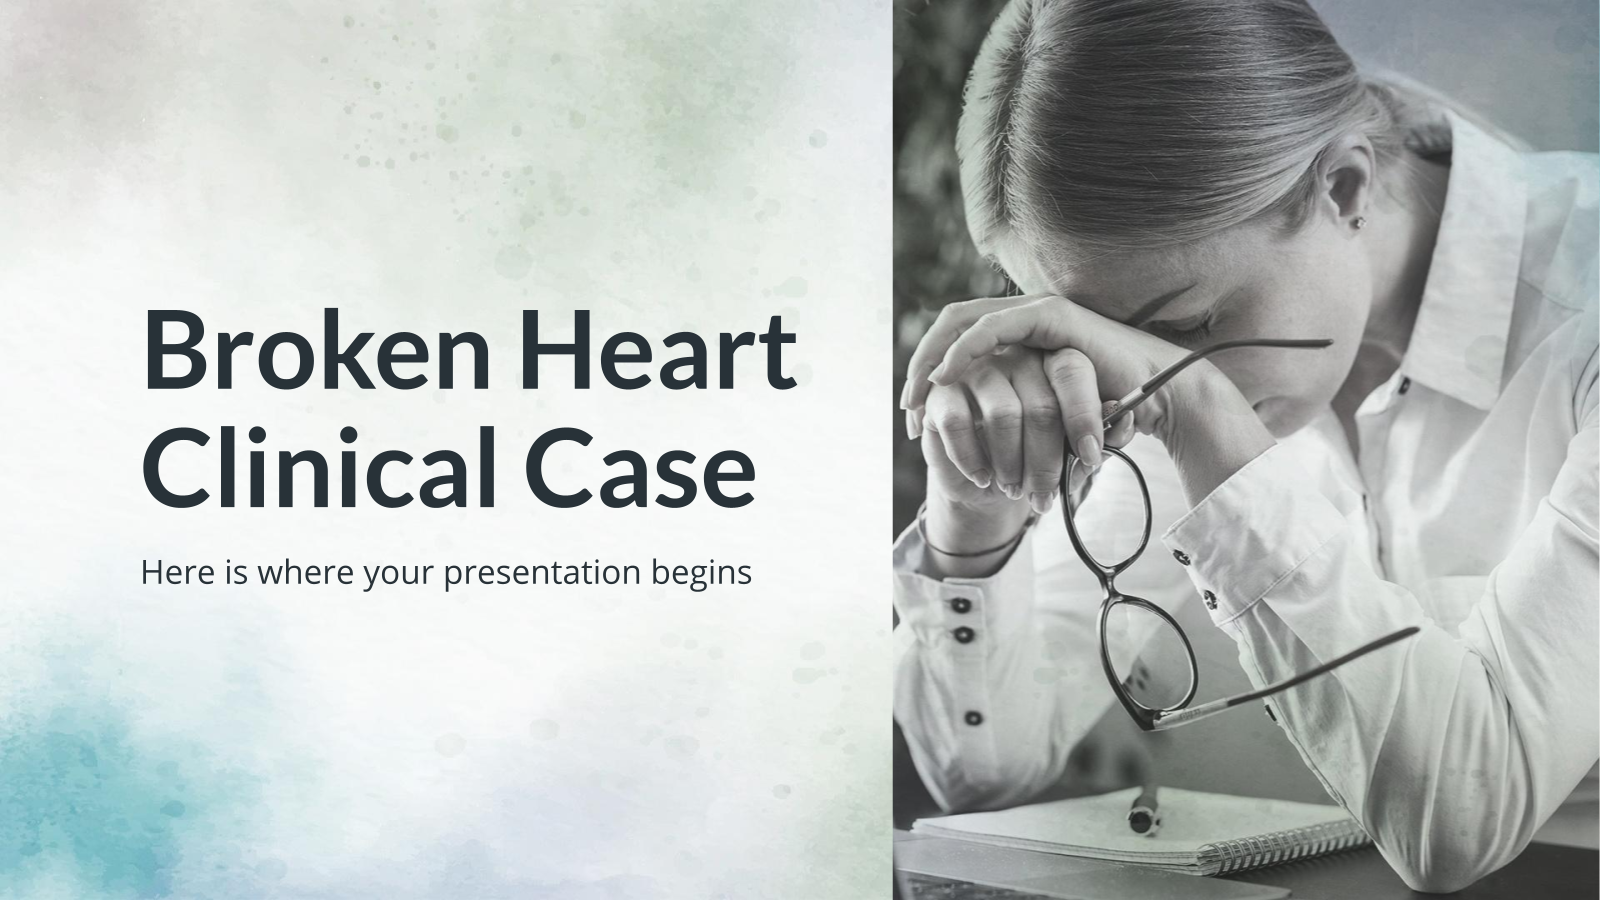 Broken Heart Clinical Case presentation template